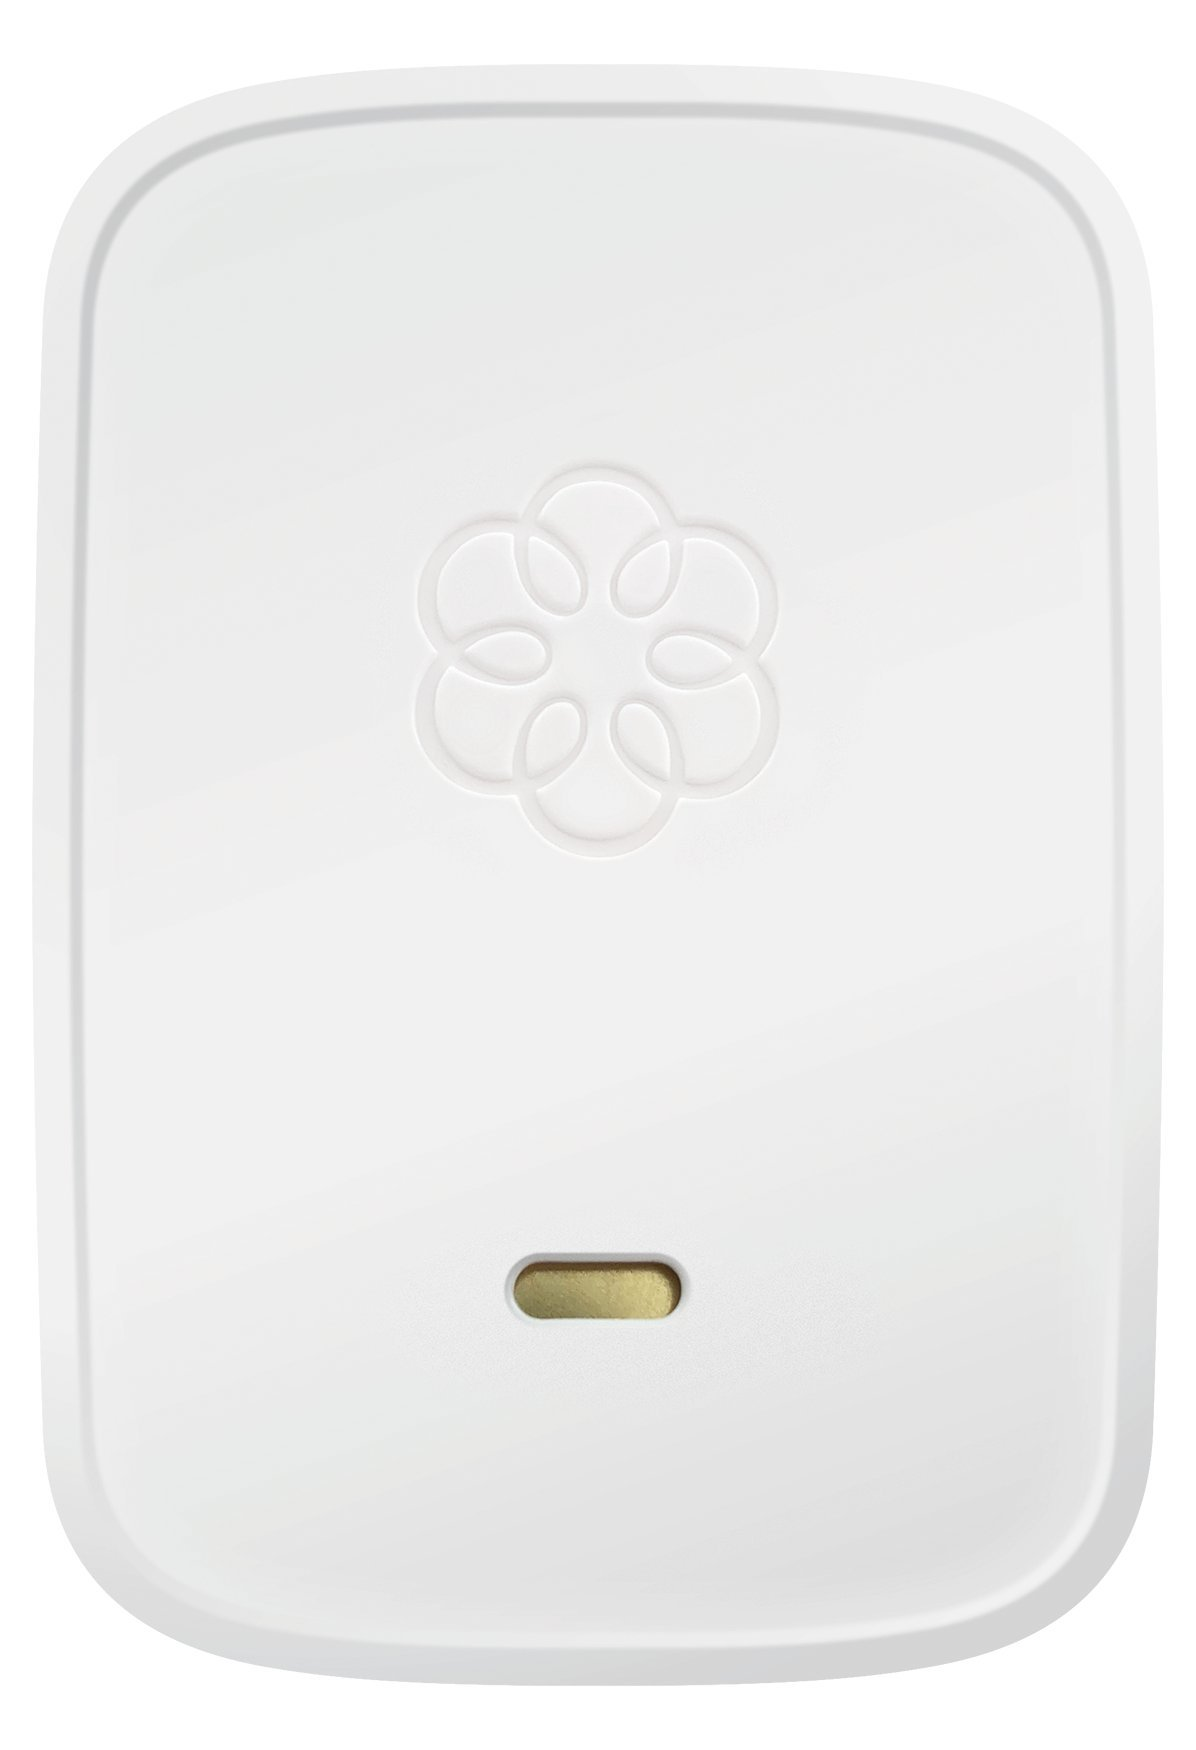 Ooma Home Siren